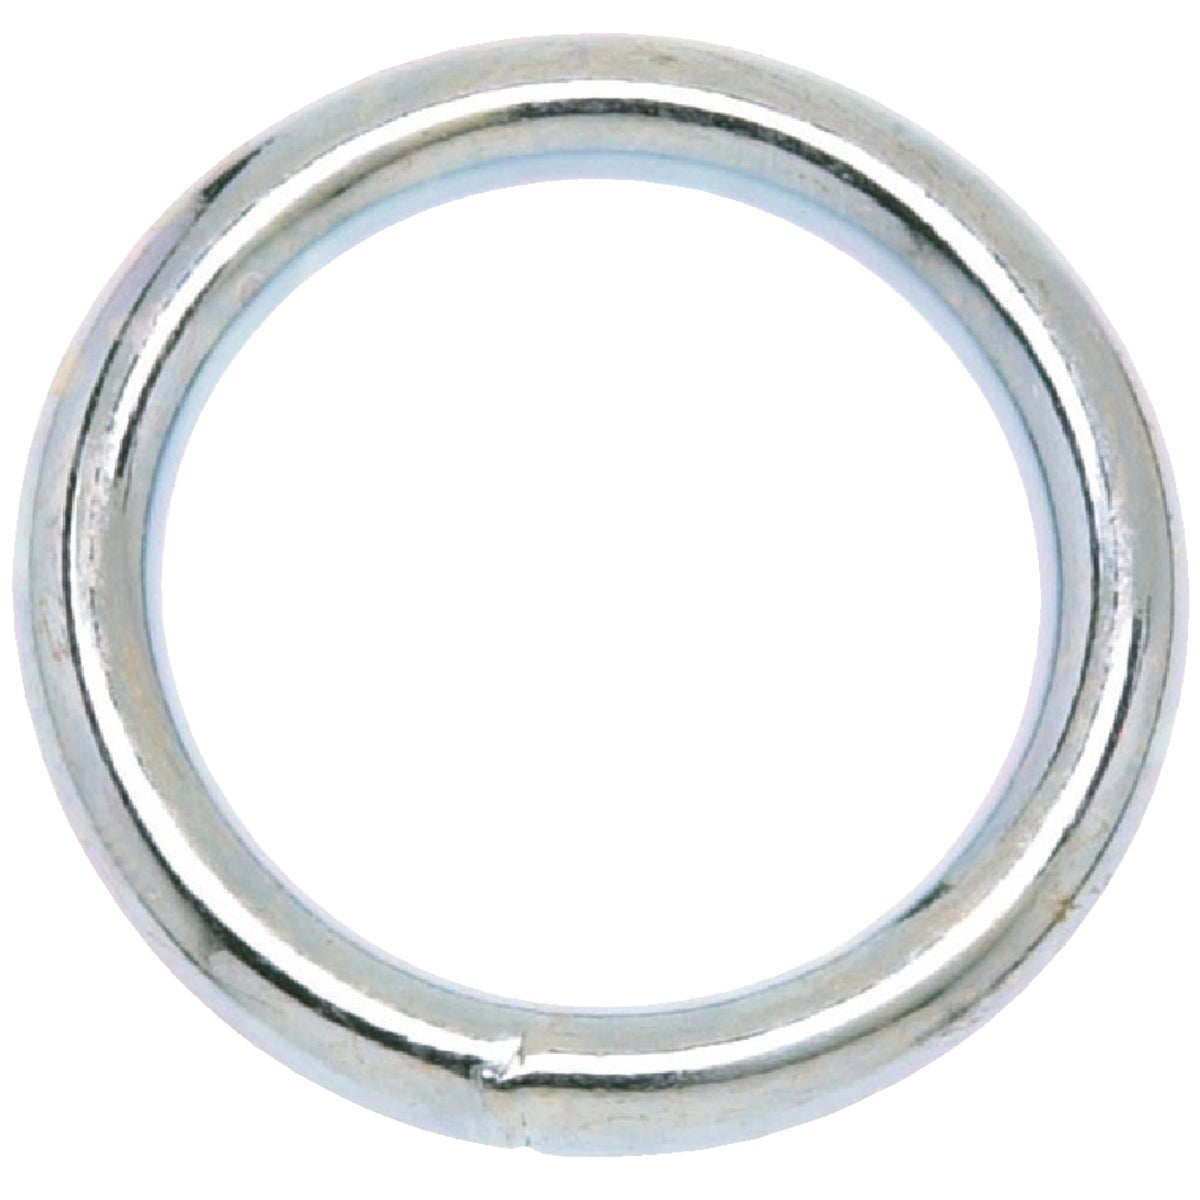 "1-1/2"" #3 ROUND RING - T7665042 by Cooper Campbell Apex"